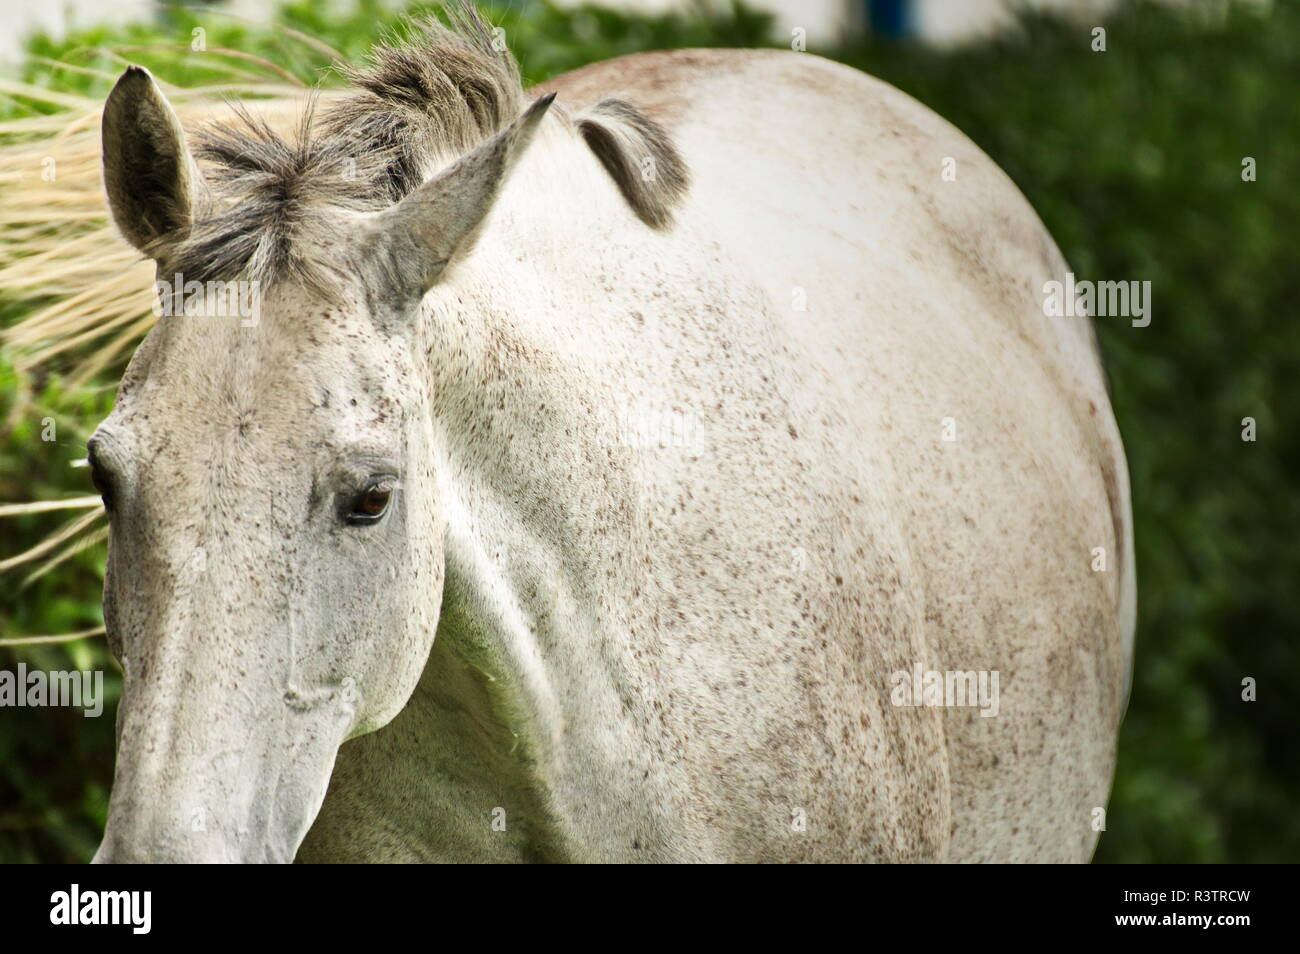 White mare looking - Stock Image